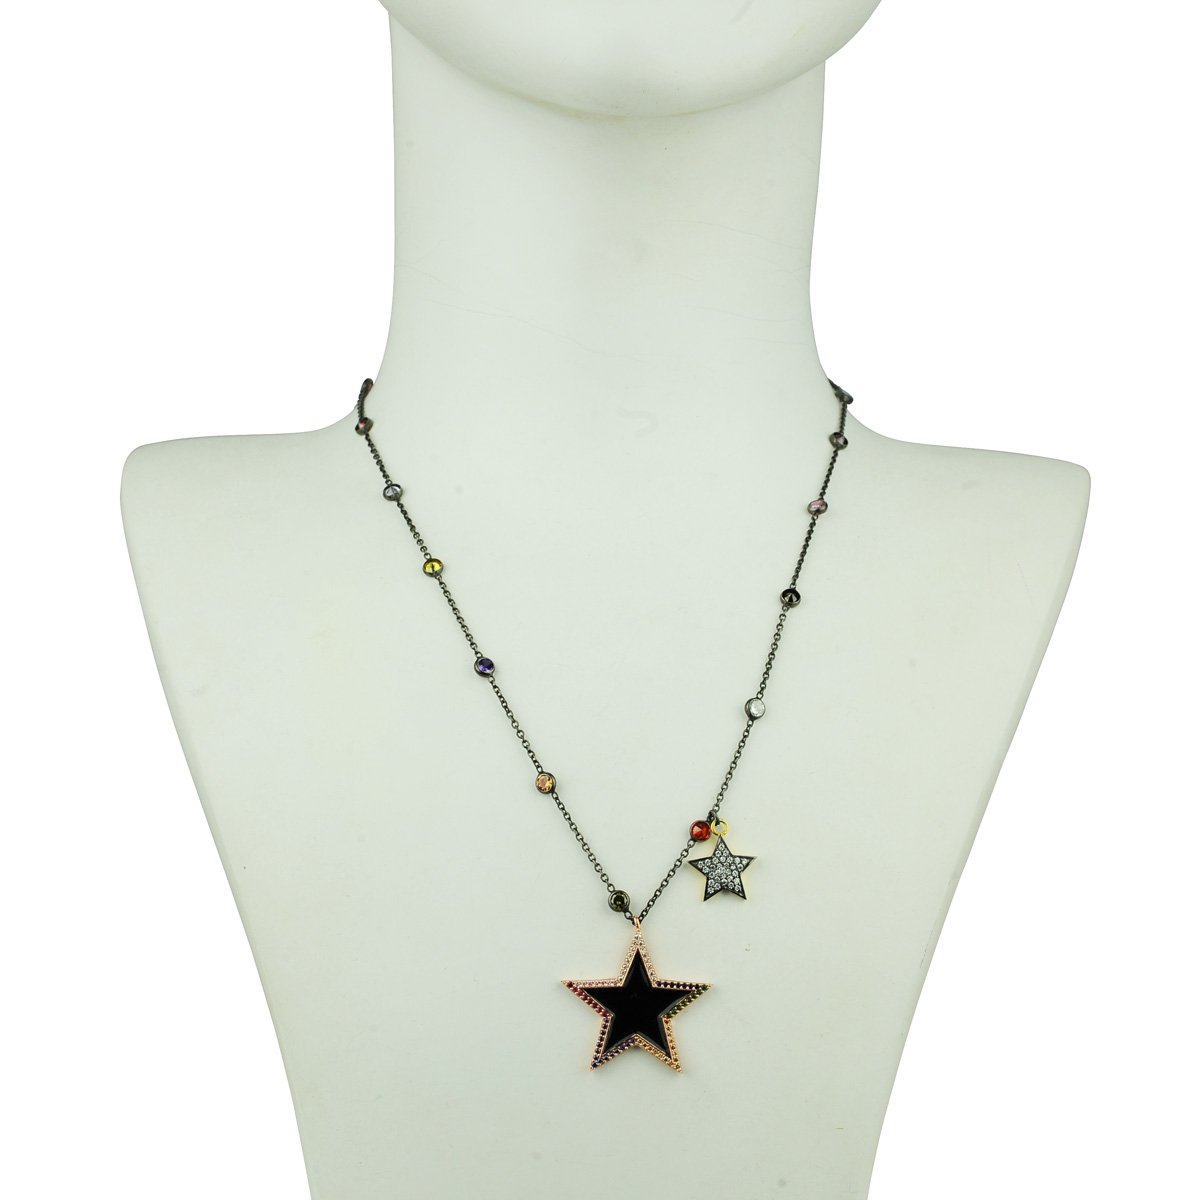 Short chain necklace with enamel star adorned with multi color crystals katerina psoma